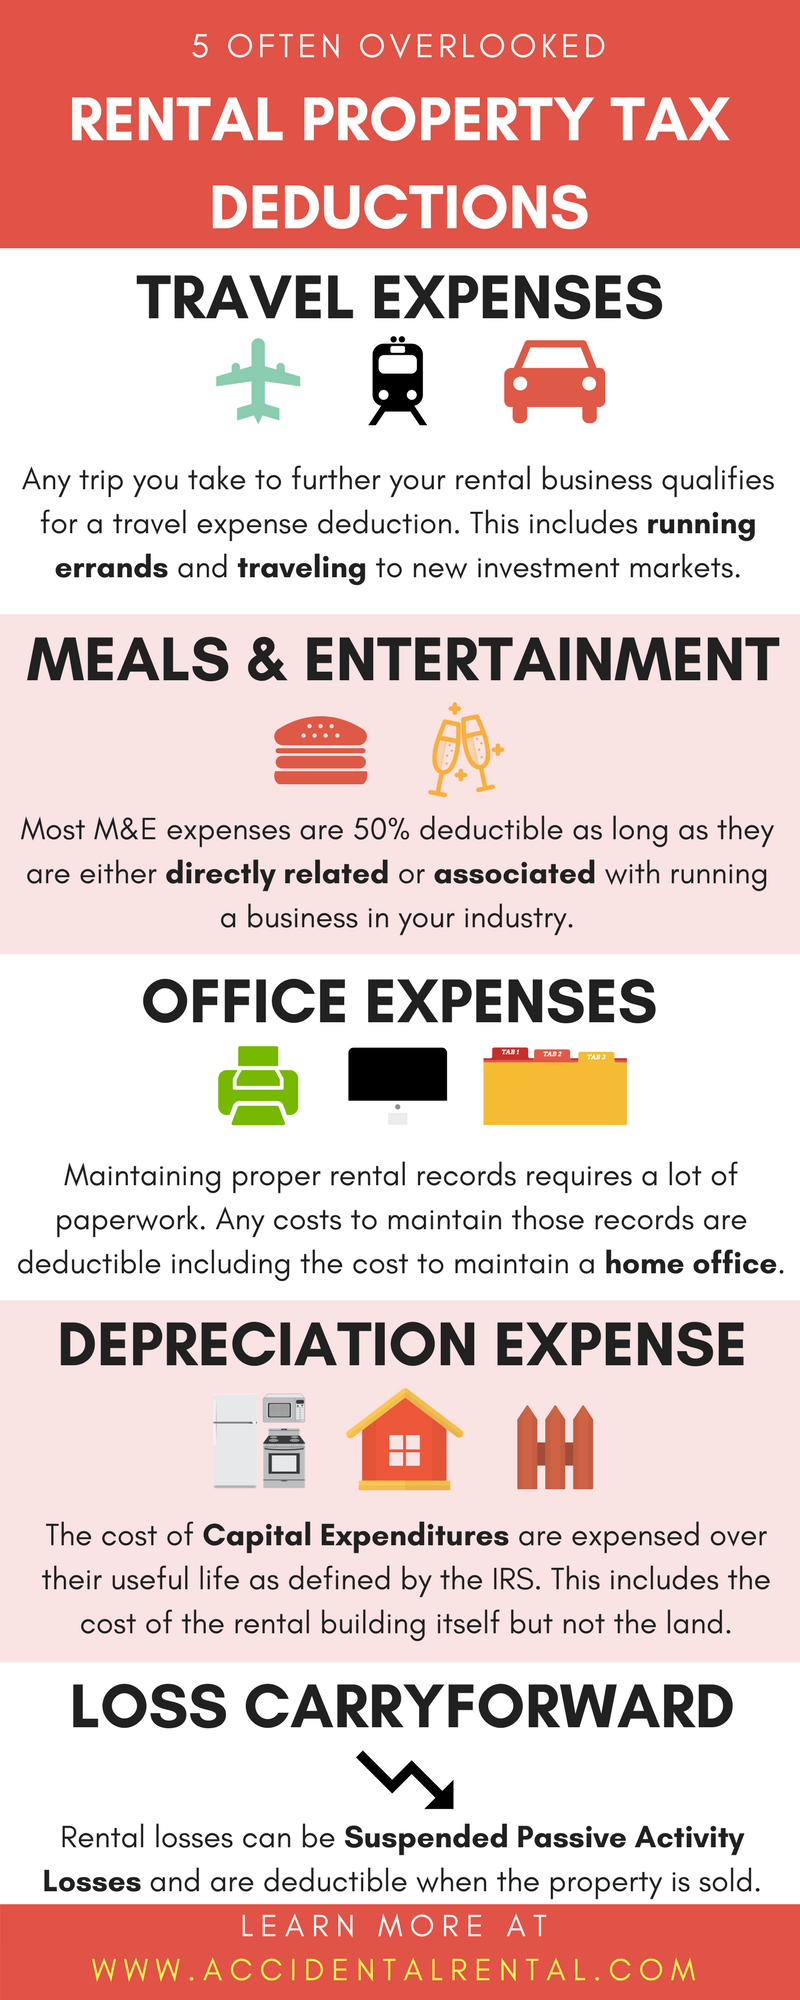 Overlooked Rental Property Tax Deductions Infographic